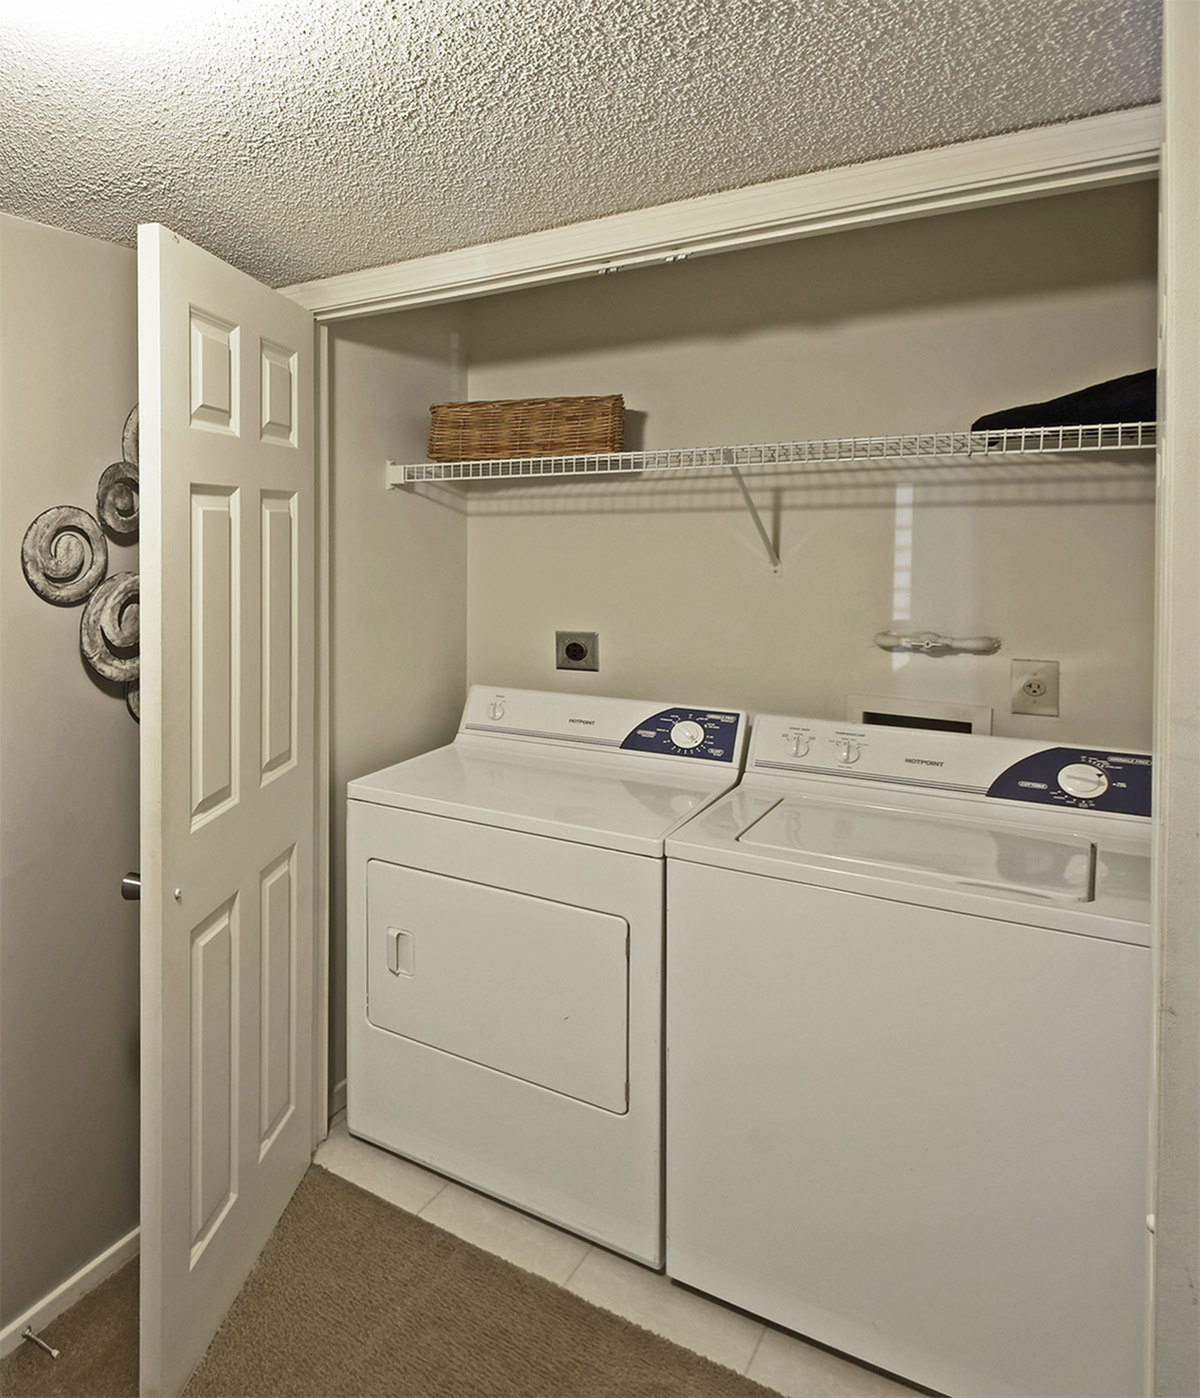 Image of Full Size Washers/Dryers for Civic Center I West